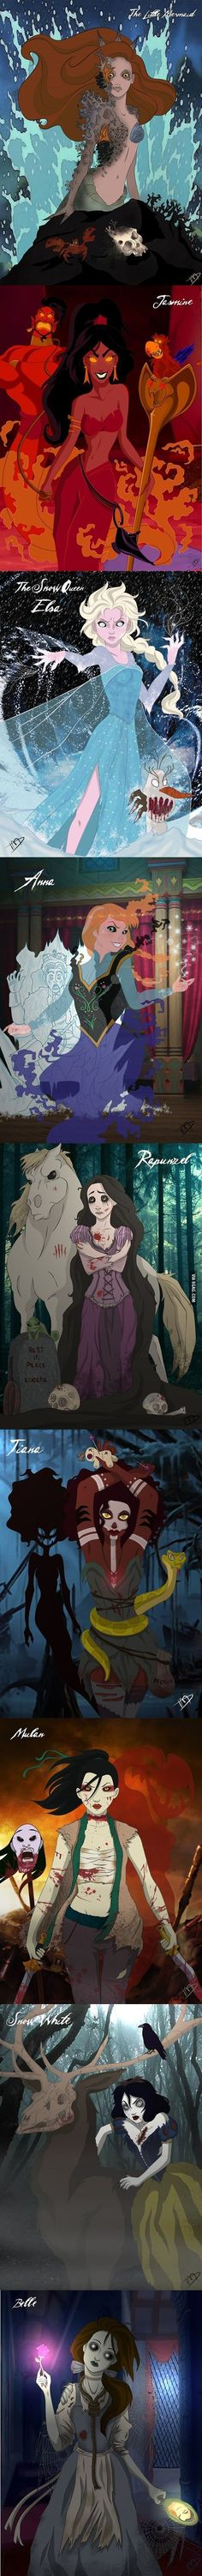 Disney Princess Horror